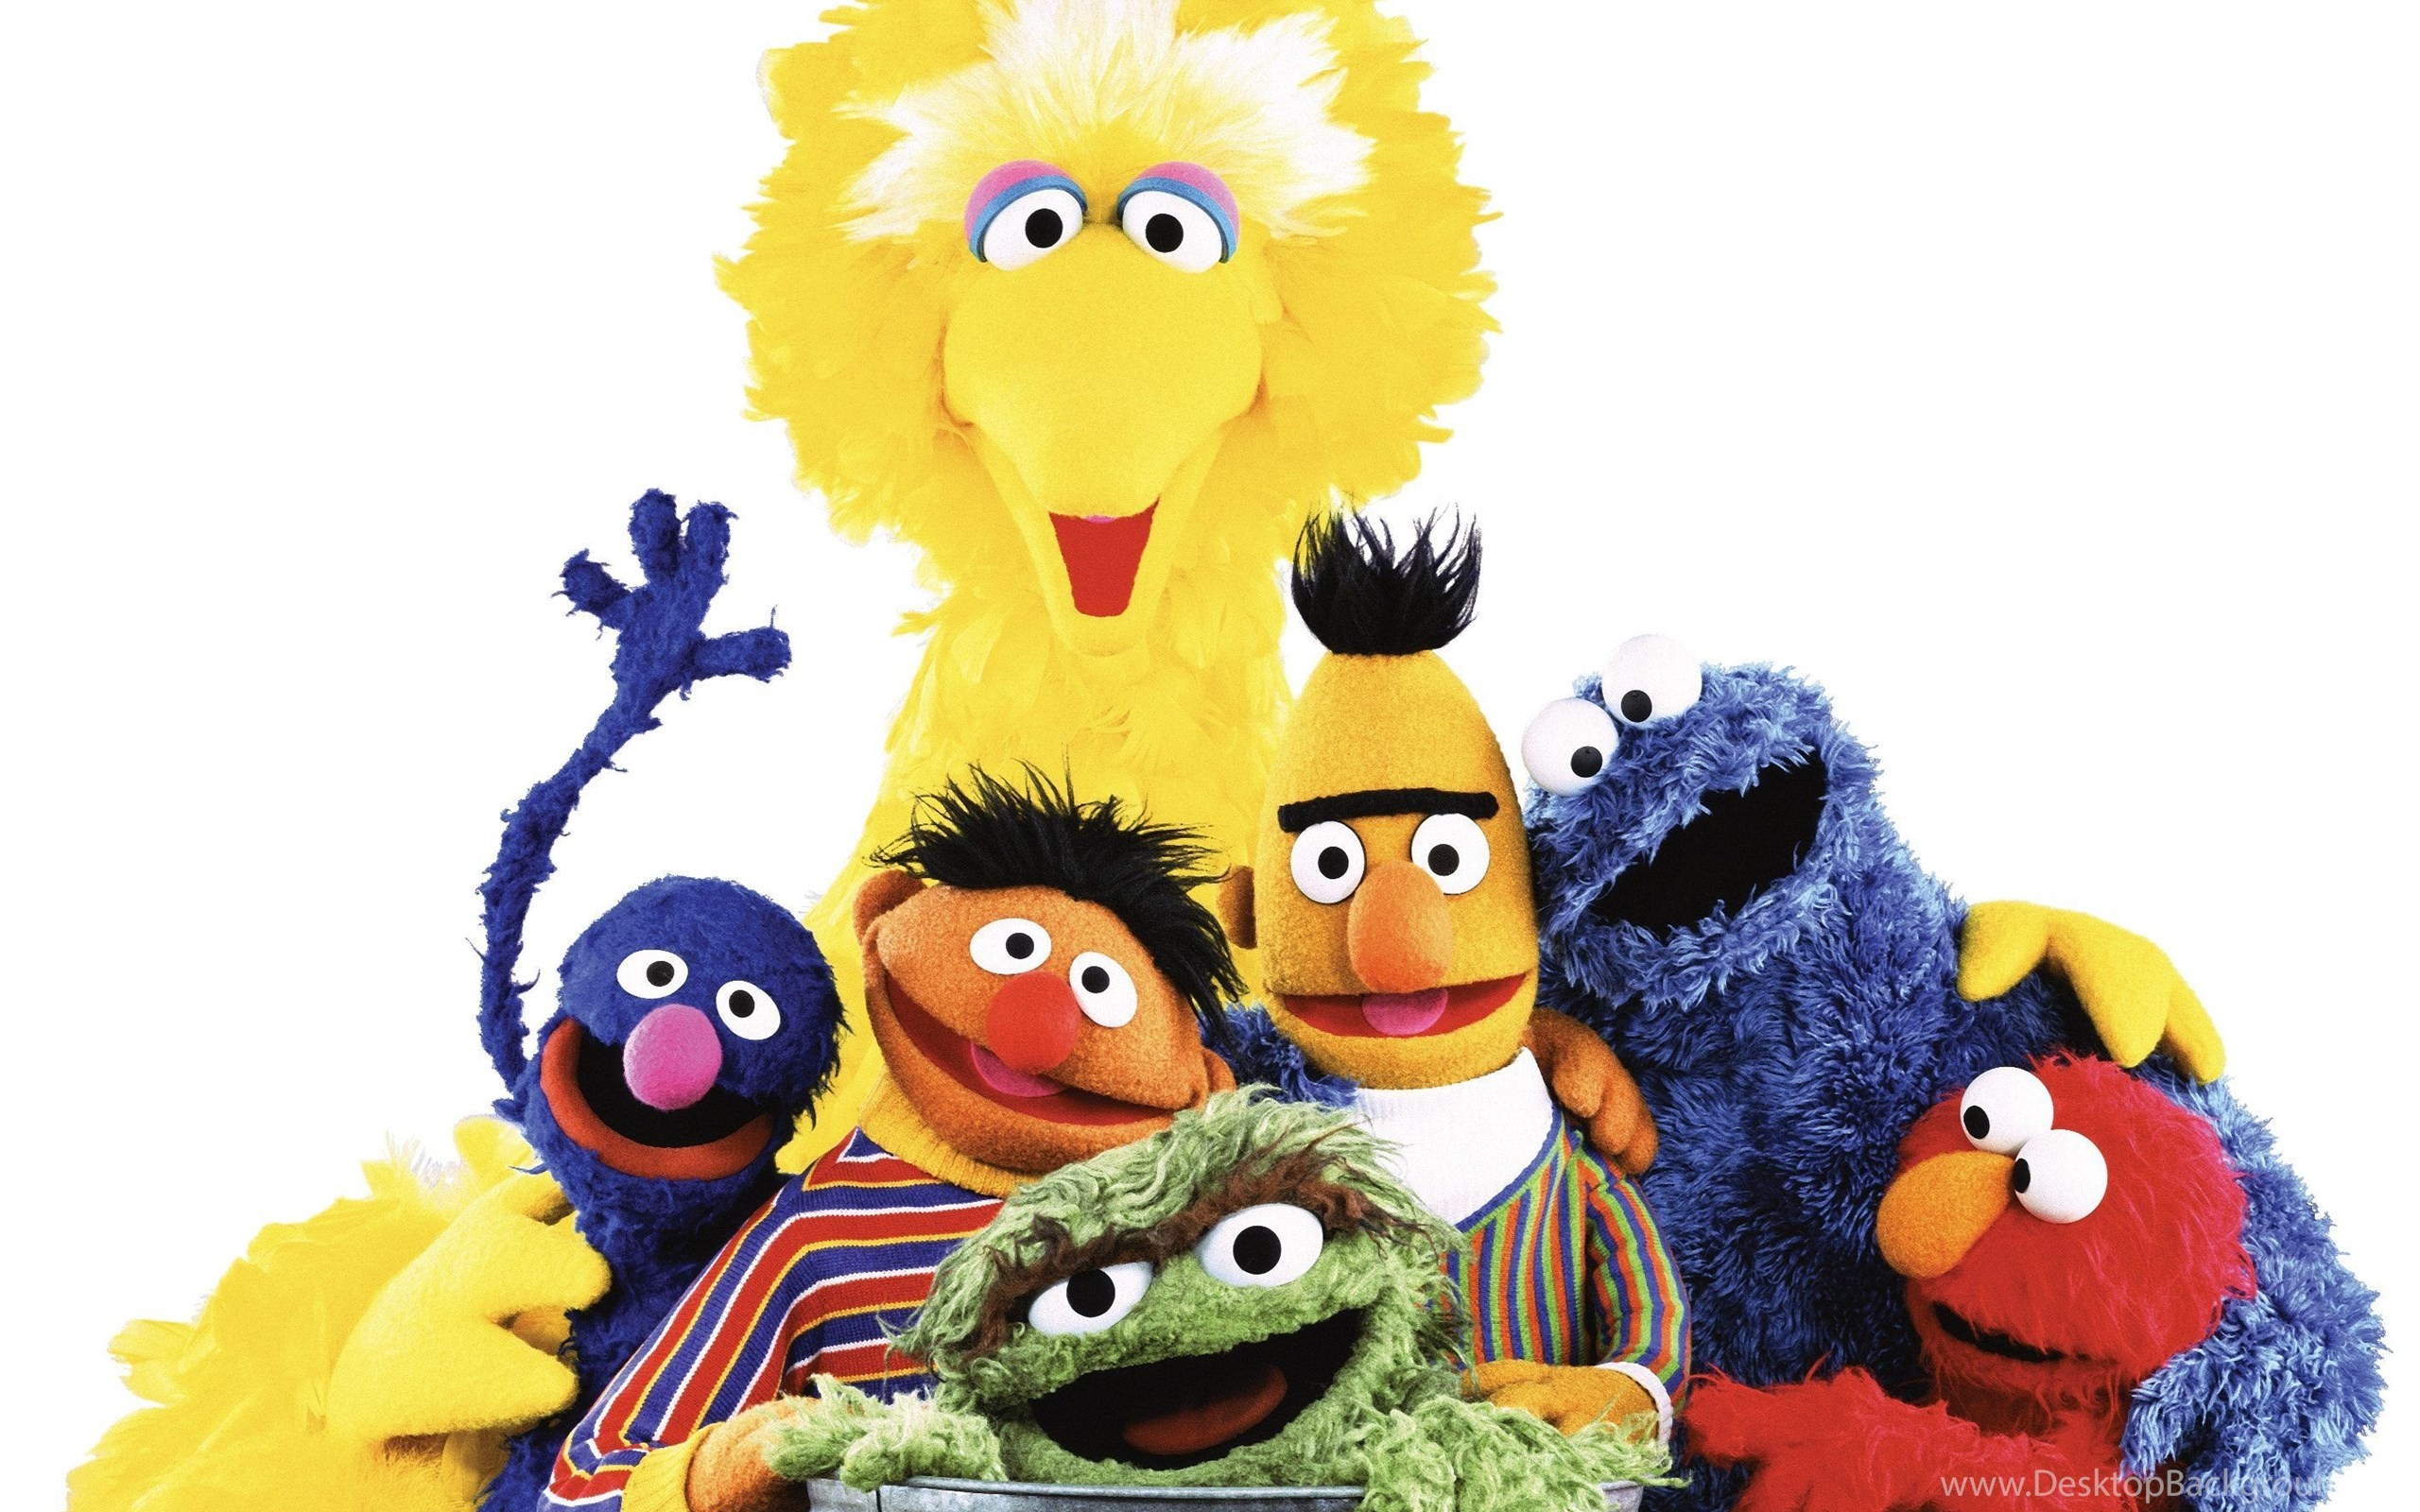 Res: 2560x1600, Sesame Street Wallpapers 9 - 2560 X 1600